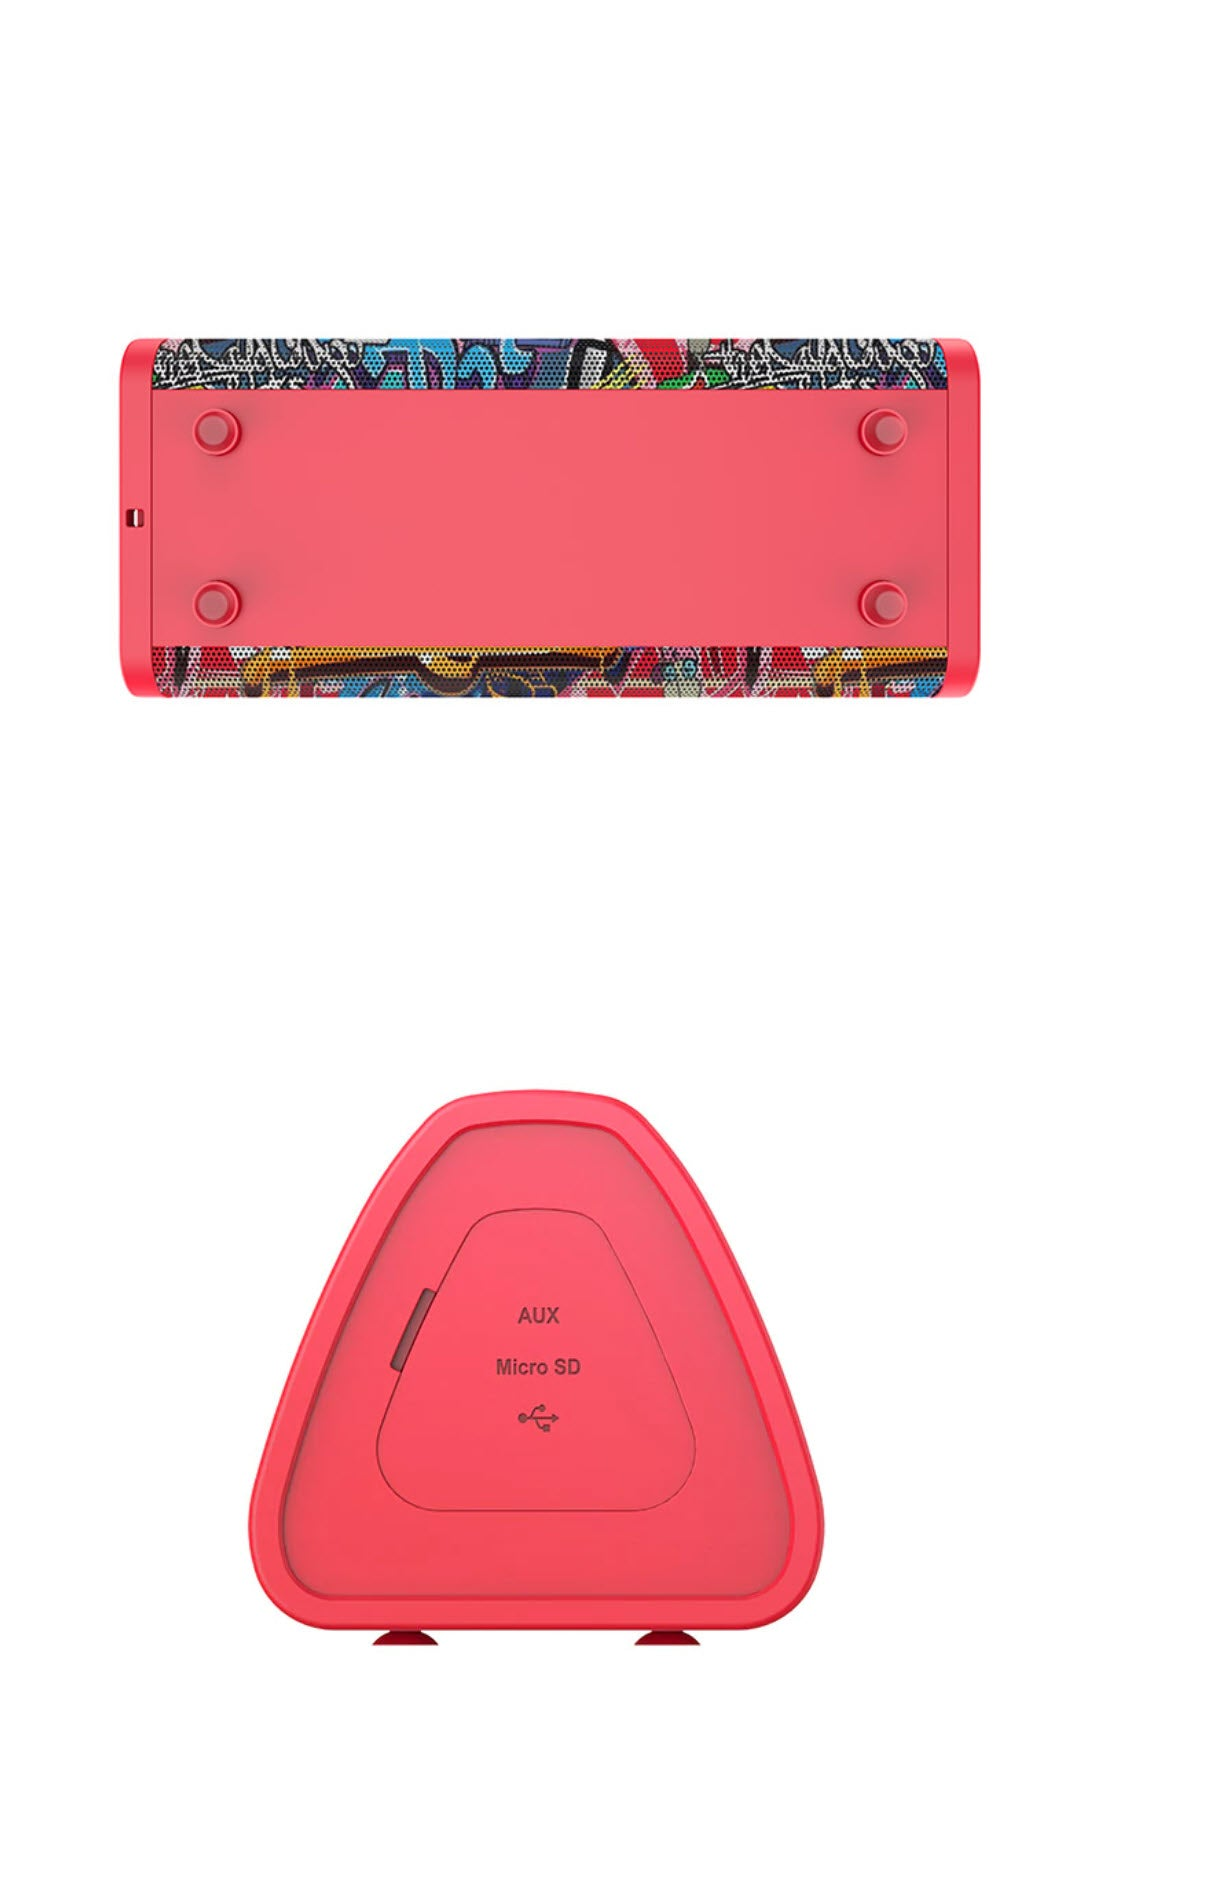 MIFA Red-Graffiti Bluetooth Speaker Product Images